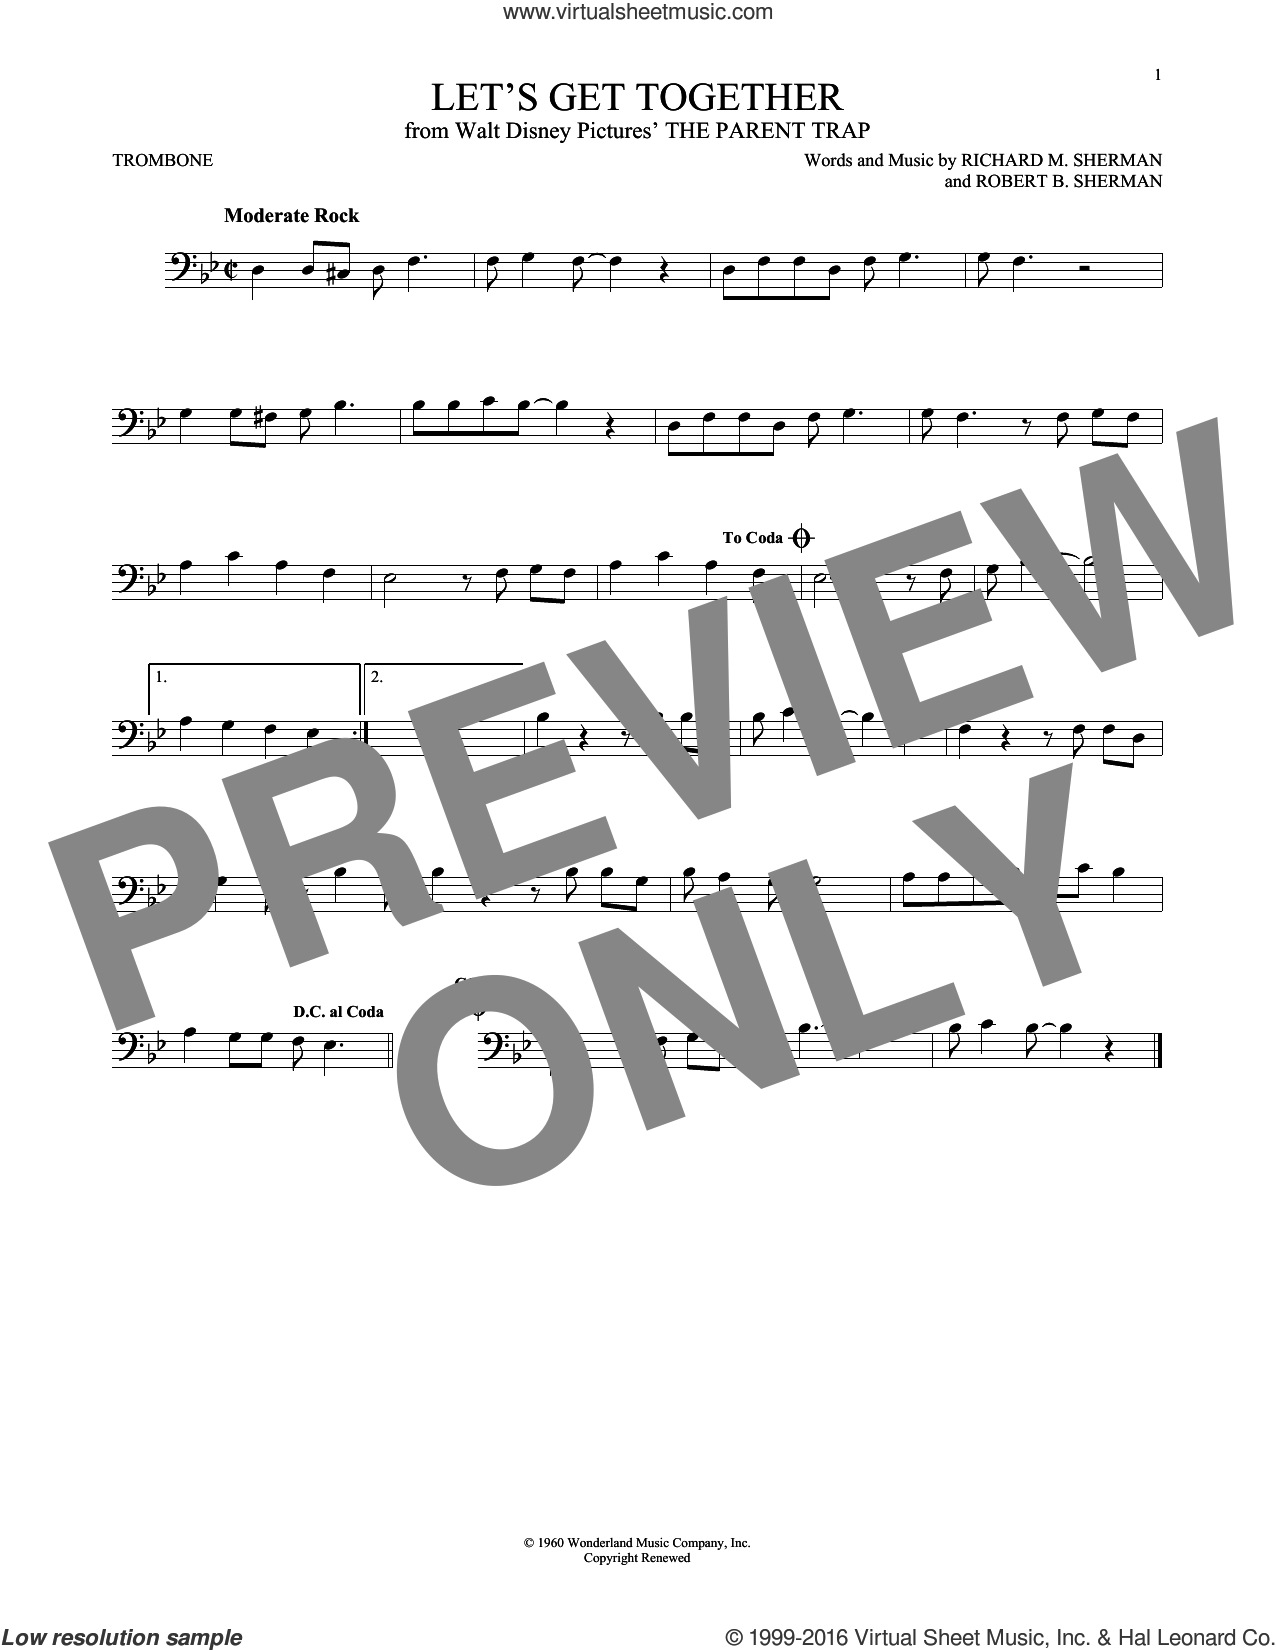 Let's Get Together sheet music for trombone solo by Hayley Mills, Richard M. Sherman and Robert B. Sherman, intermediate skill level